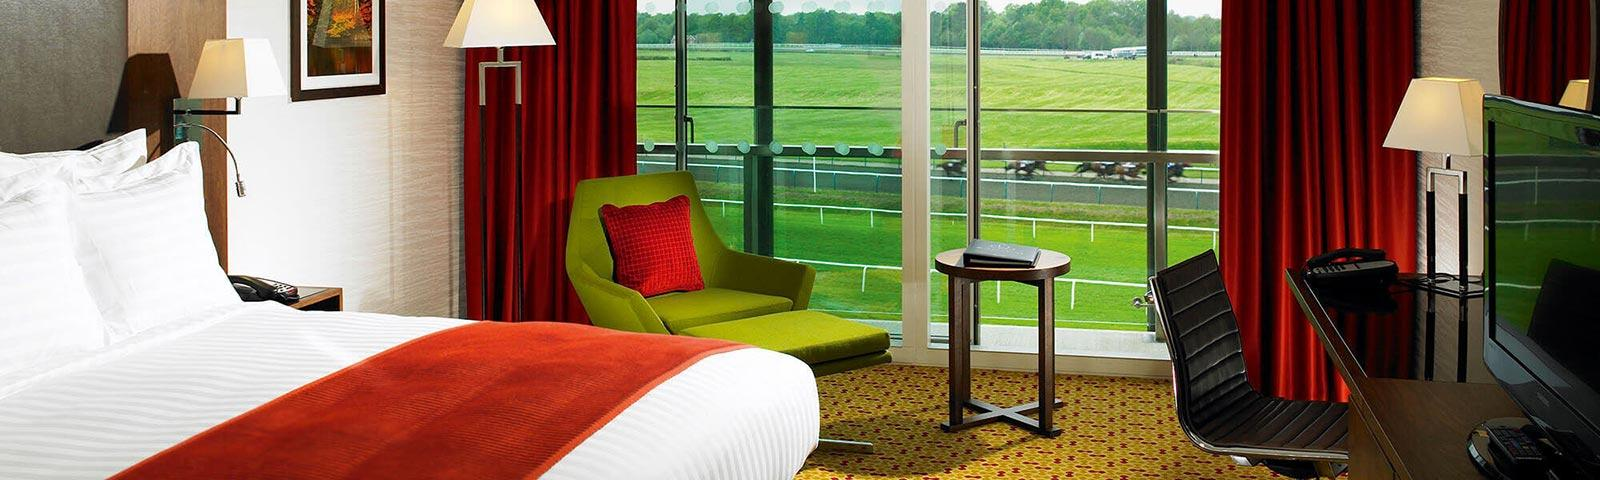 Example interior of a room at the Marriott hotel at Lingfield Park Resort.